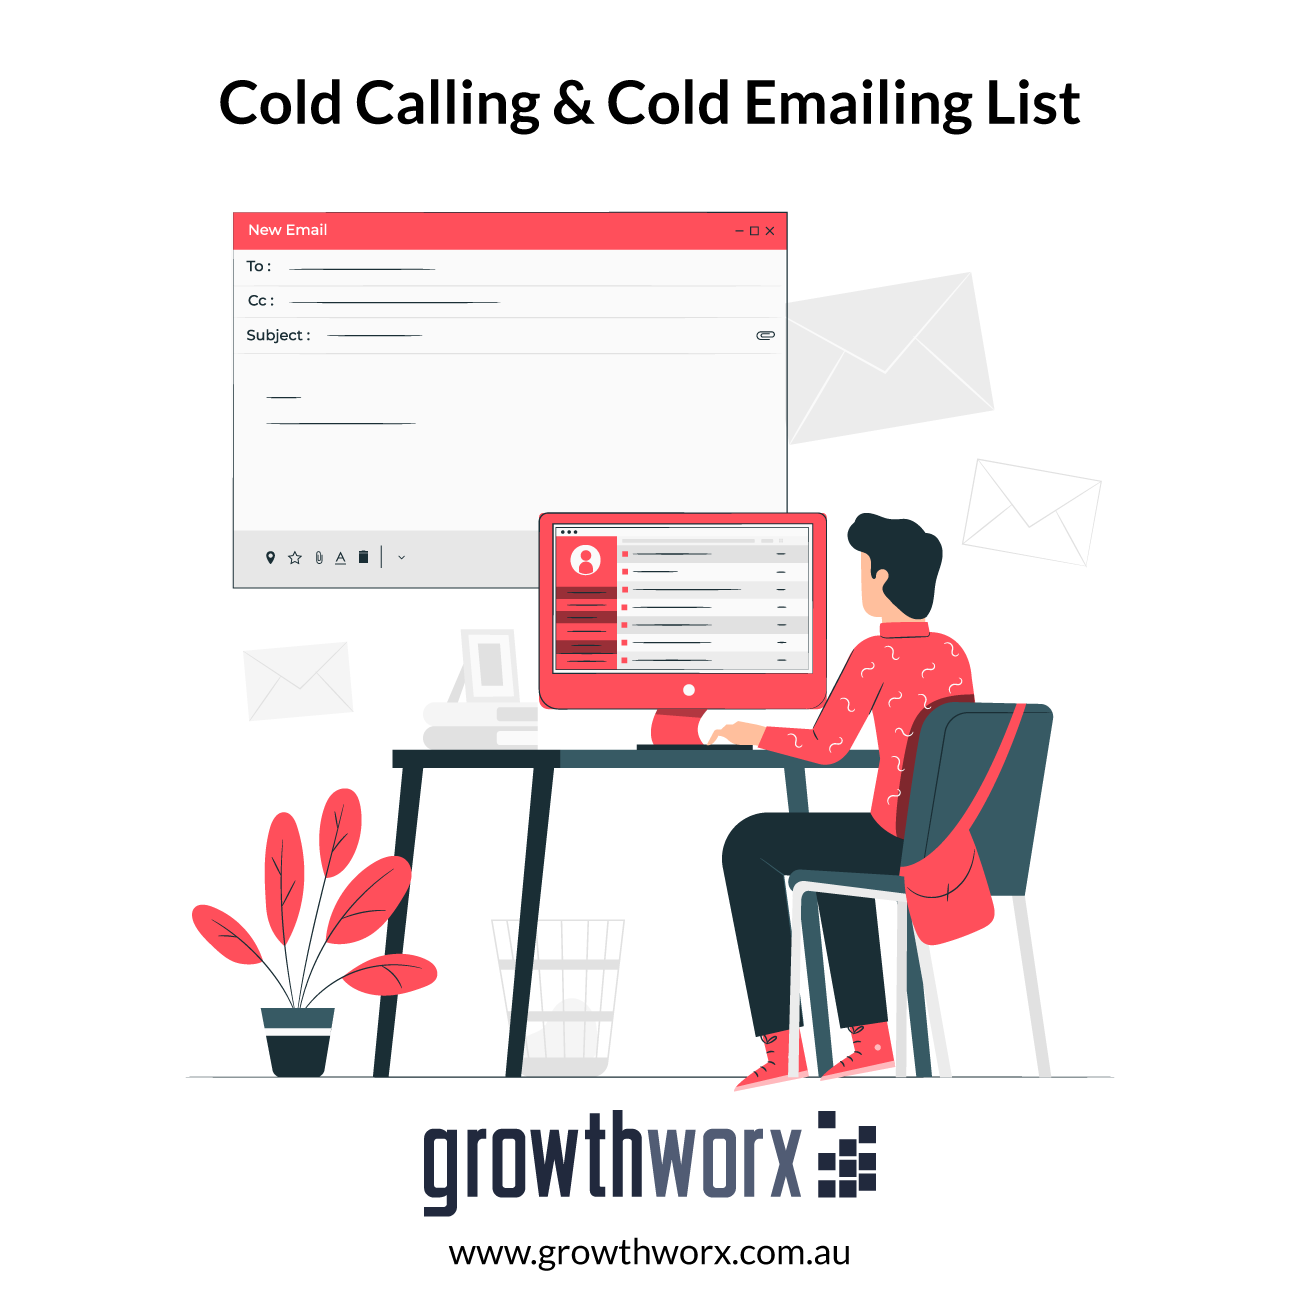 I will build cold calling and cold emailing list 1